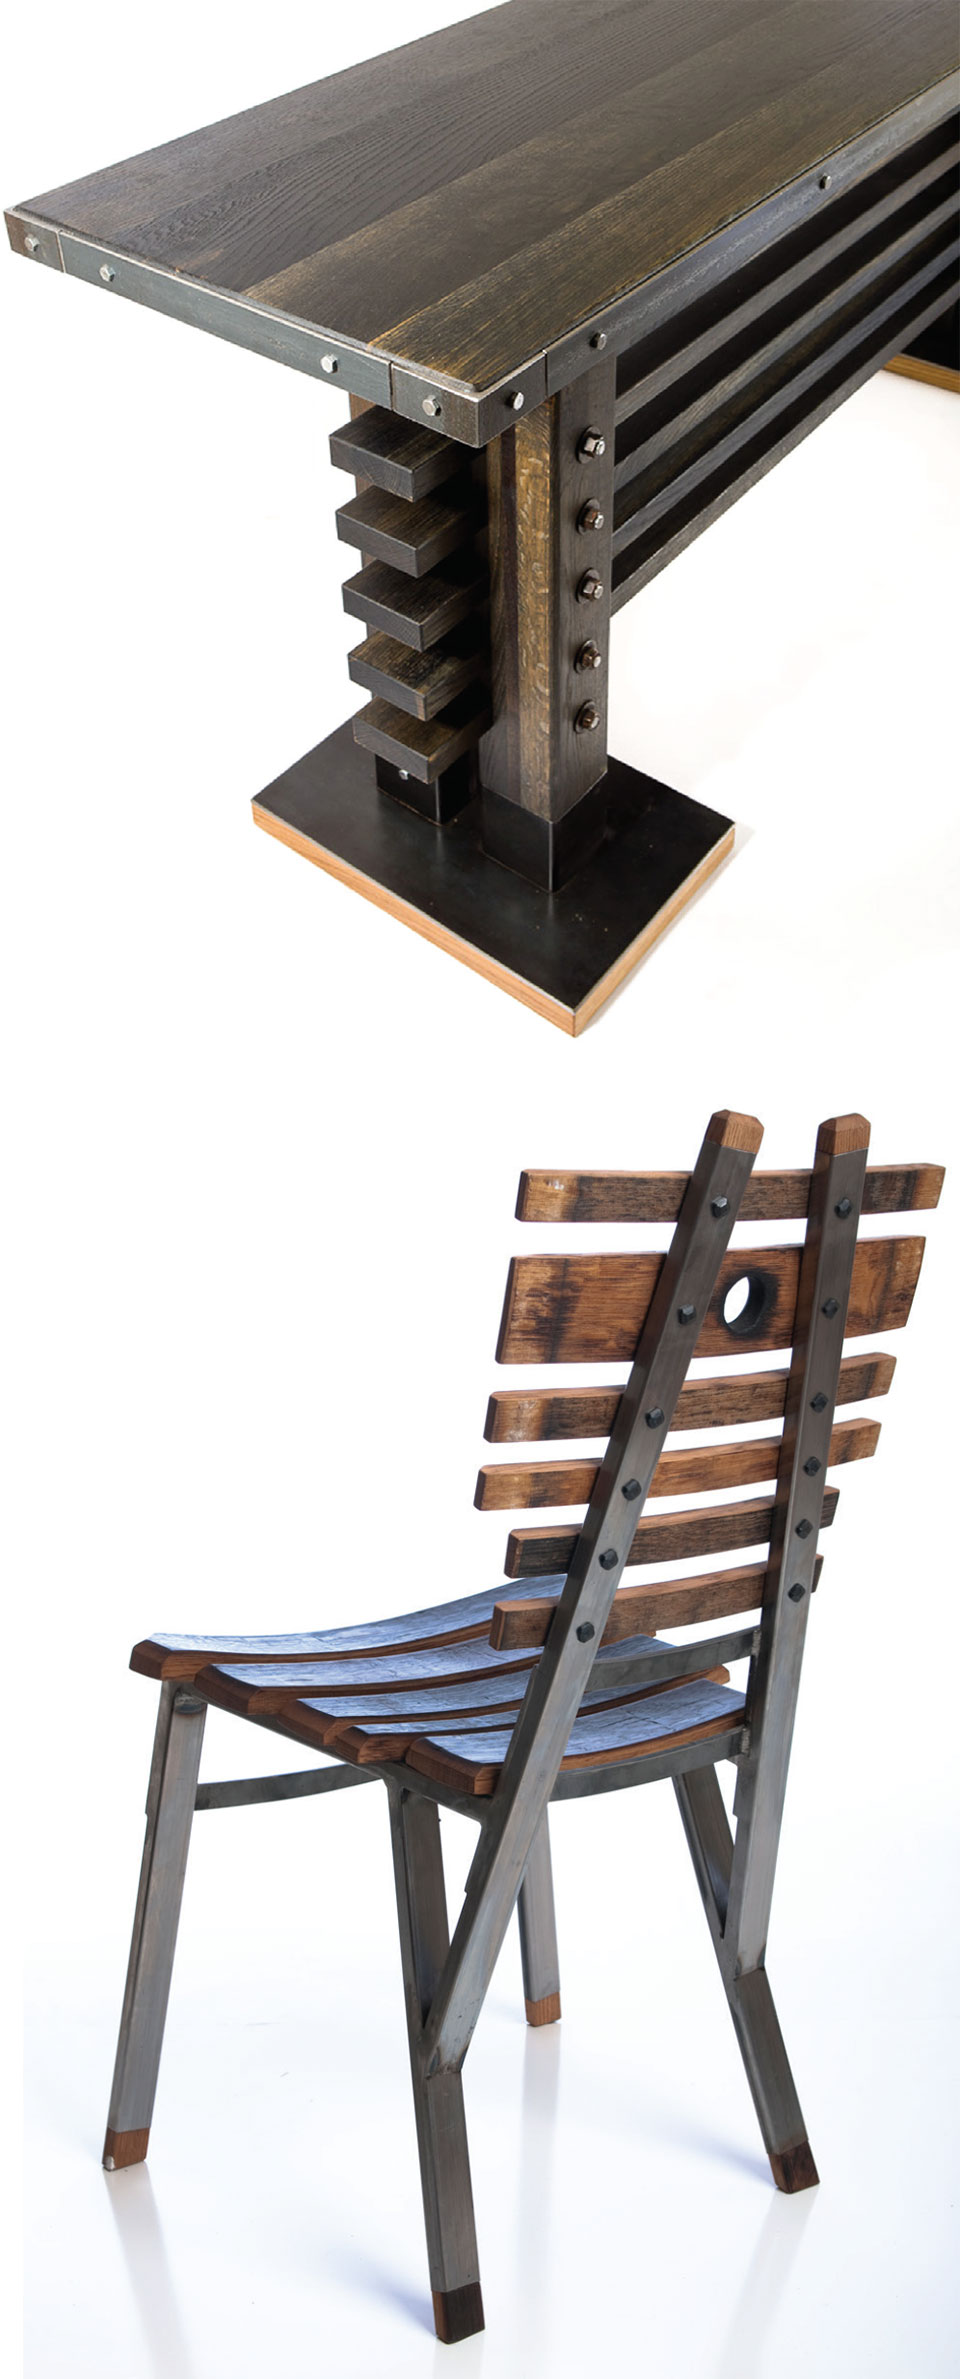 Working with Wood in the Modern West- Sun Valley Table and Chair